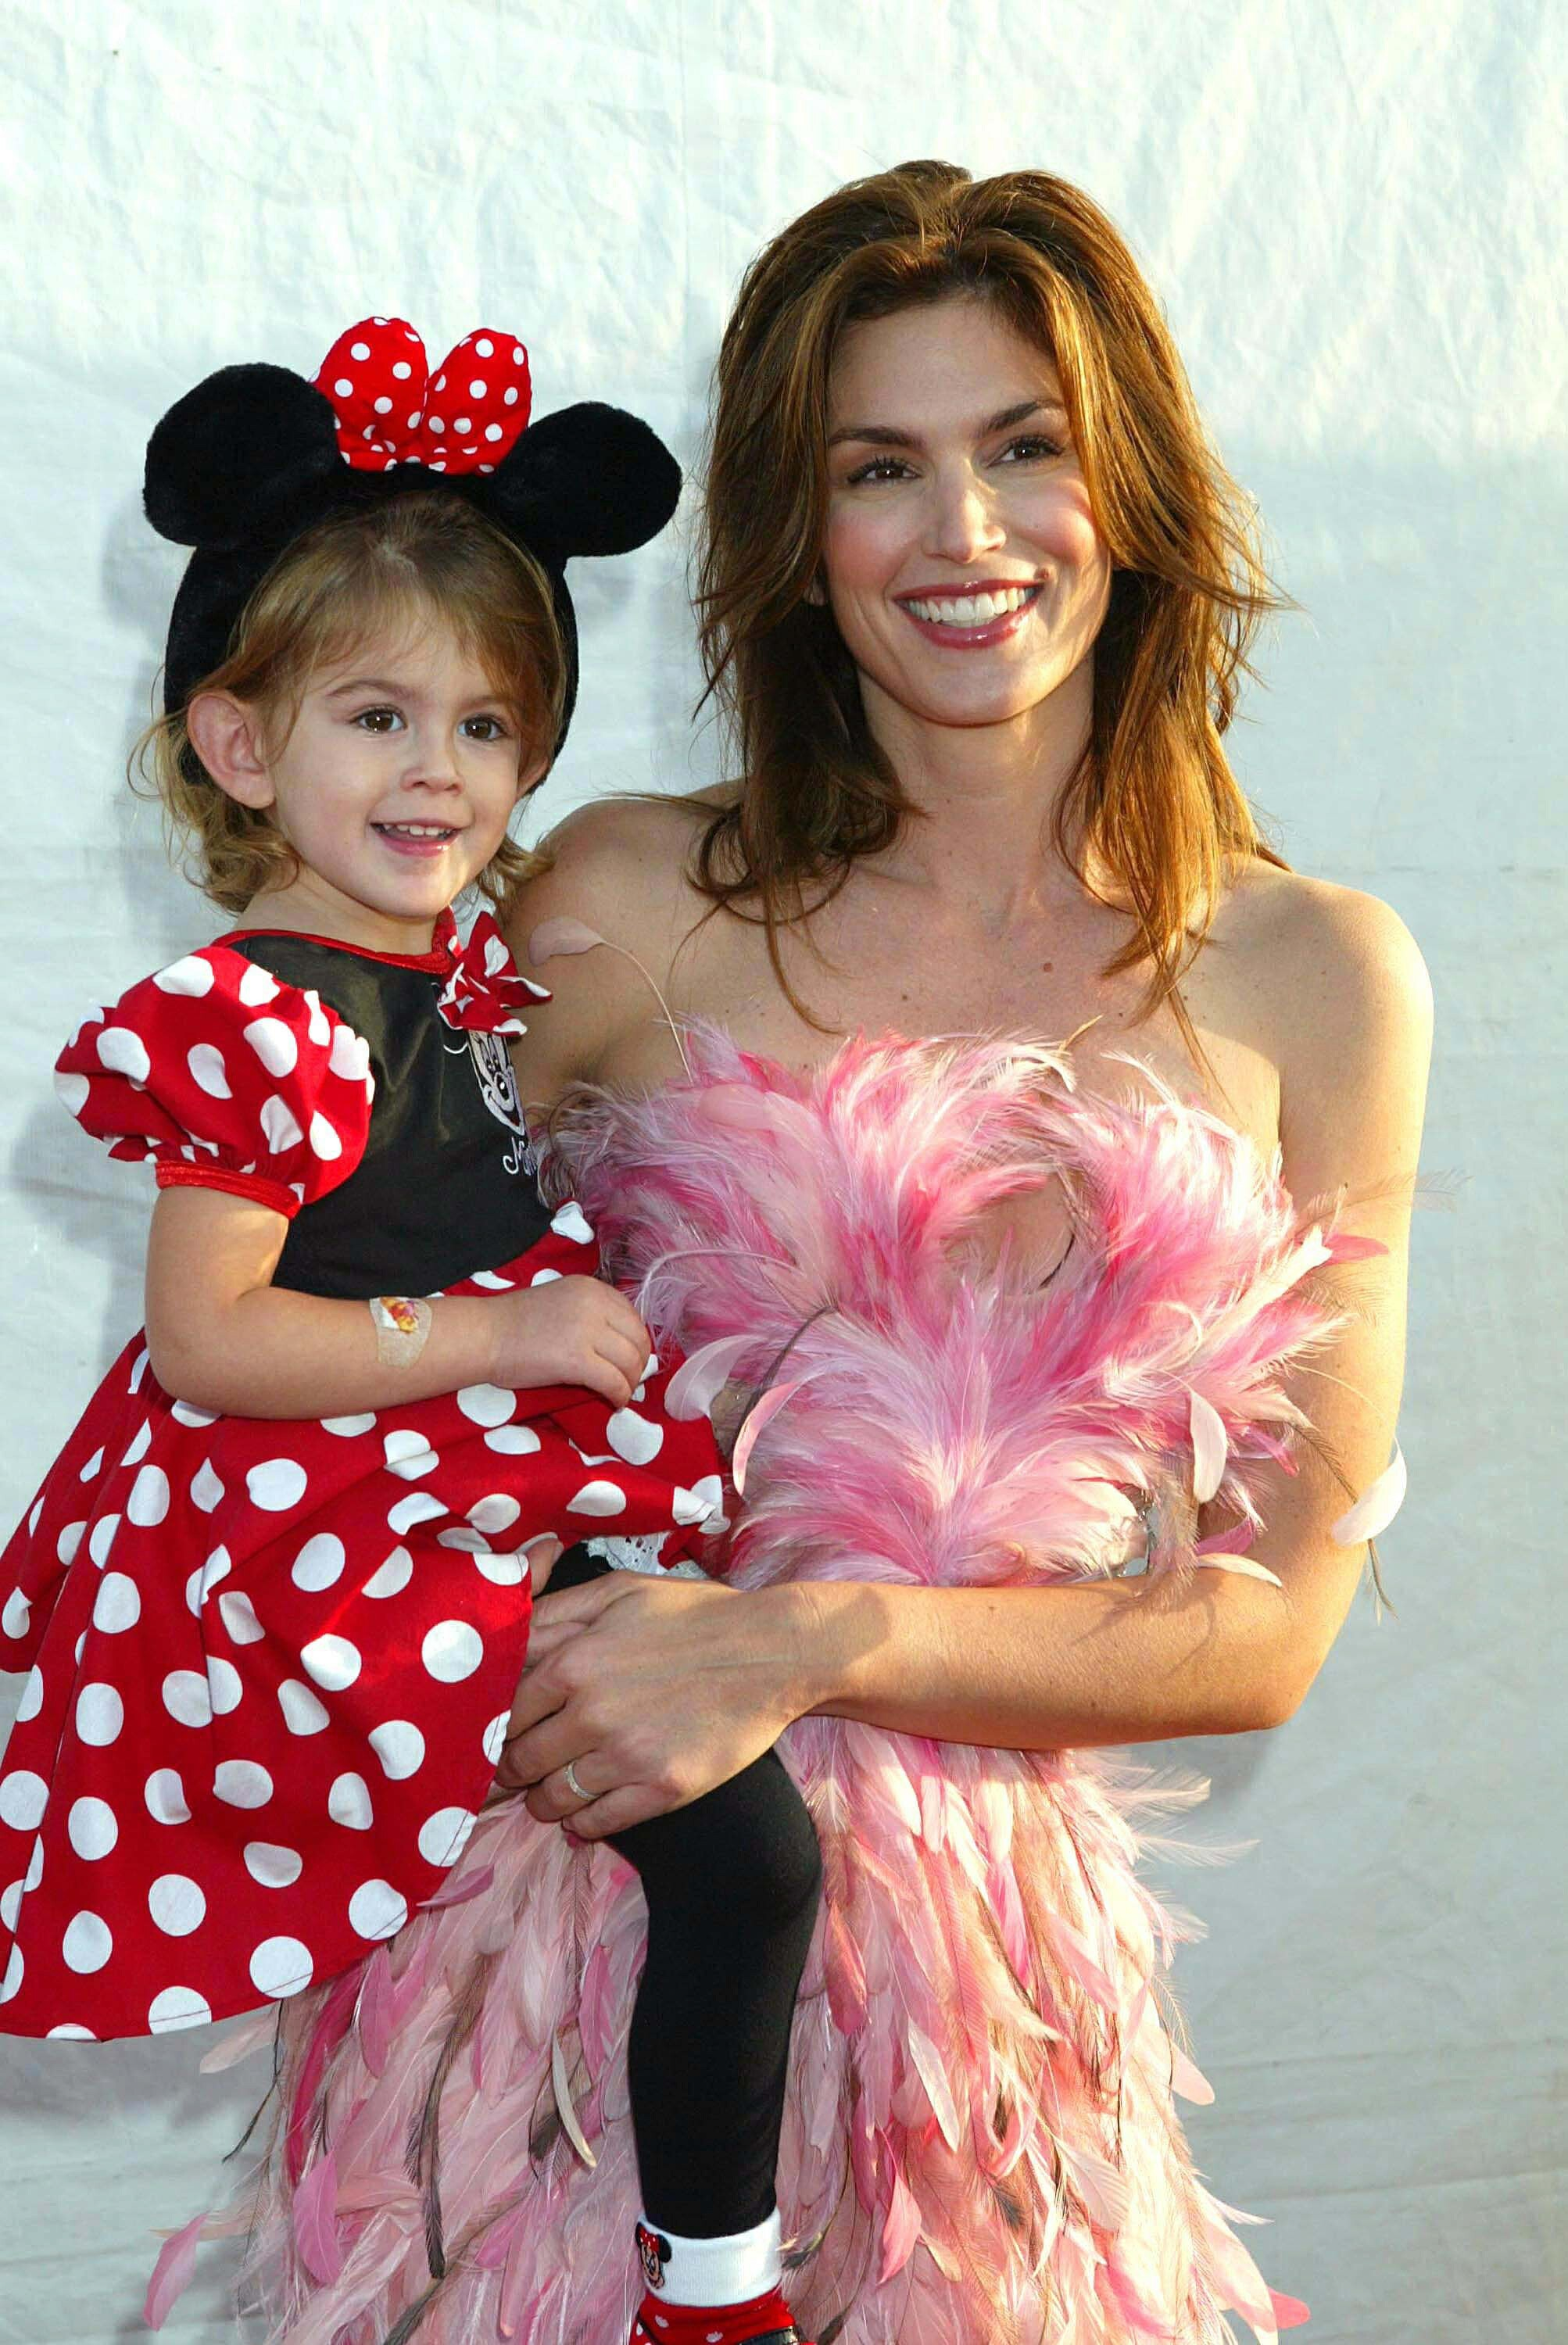 Celeb Kids Cutest Halloween Costumes Gallery Wonderwallcom